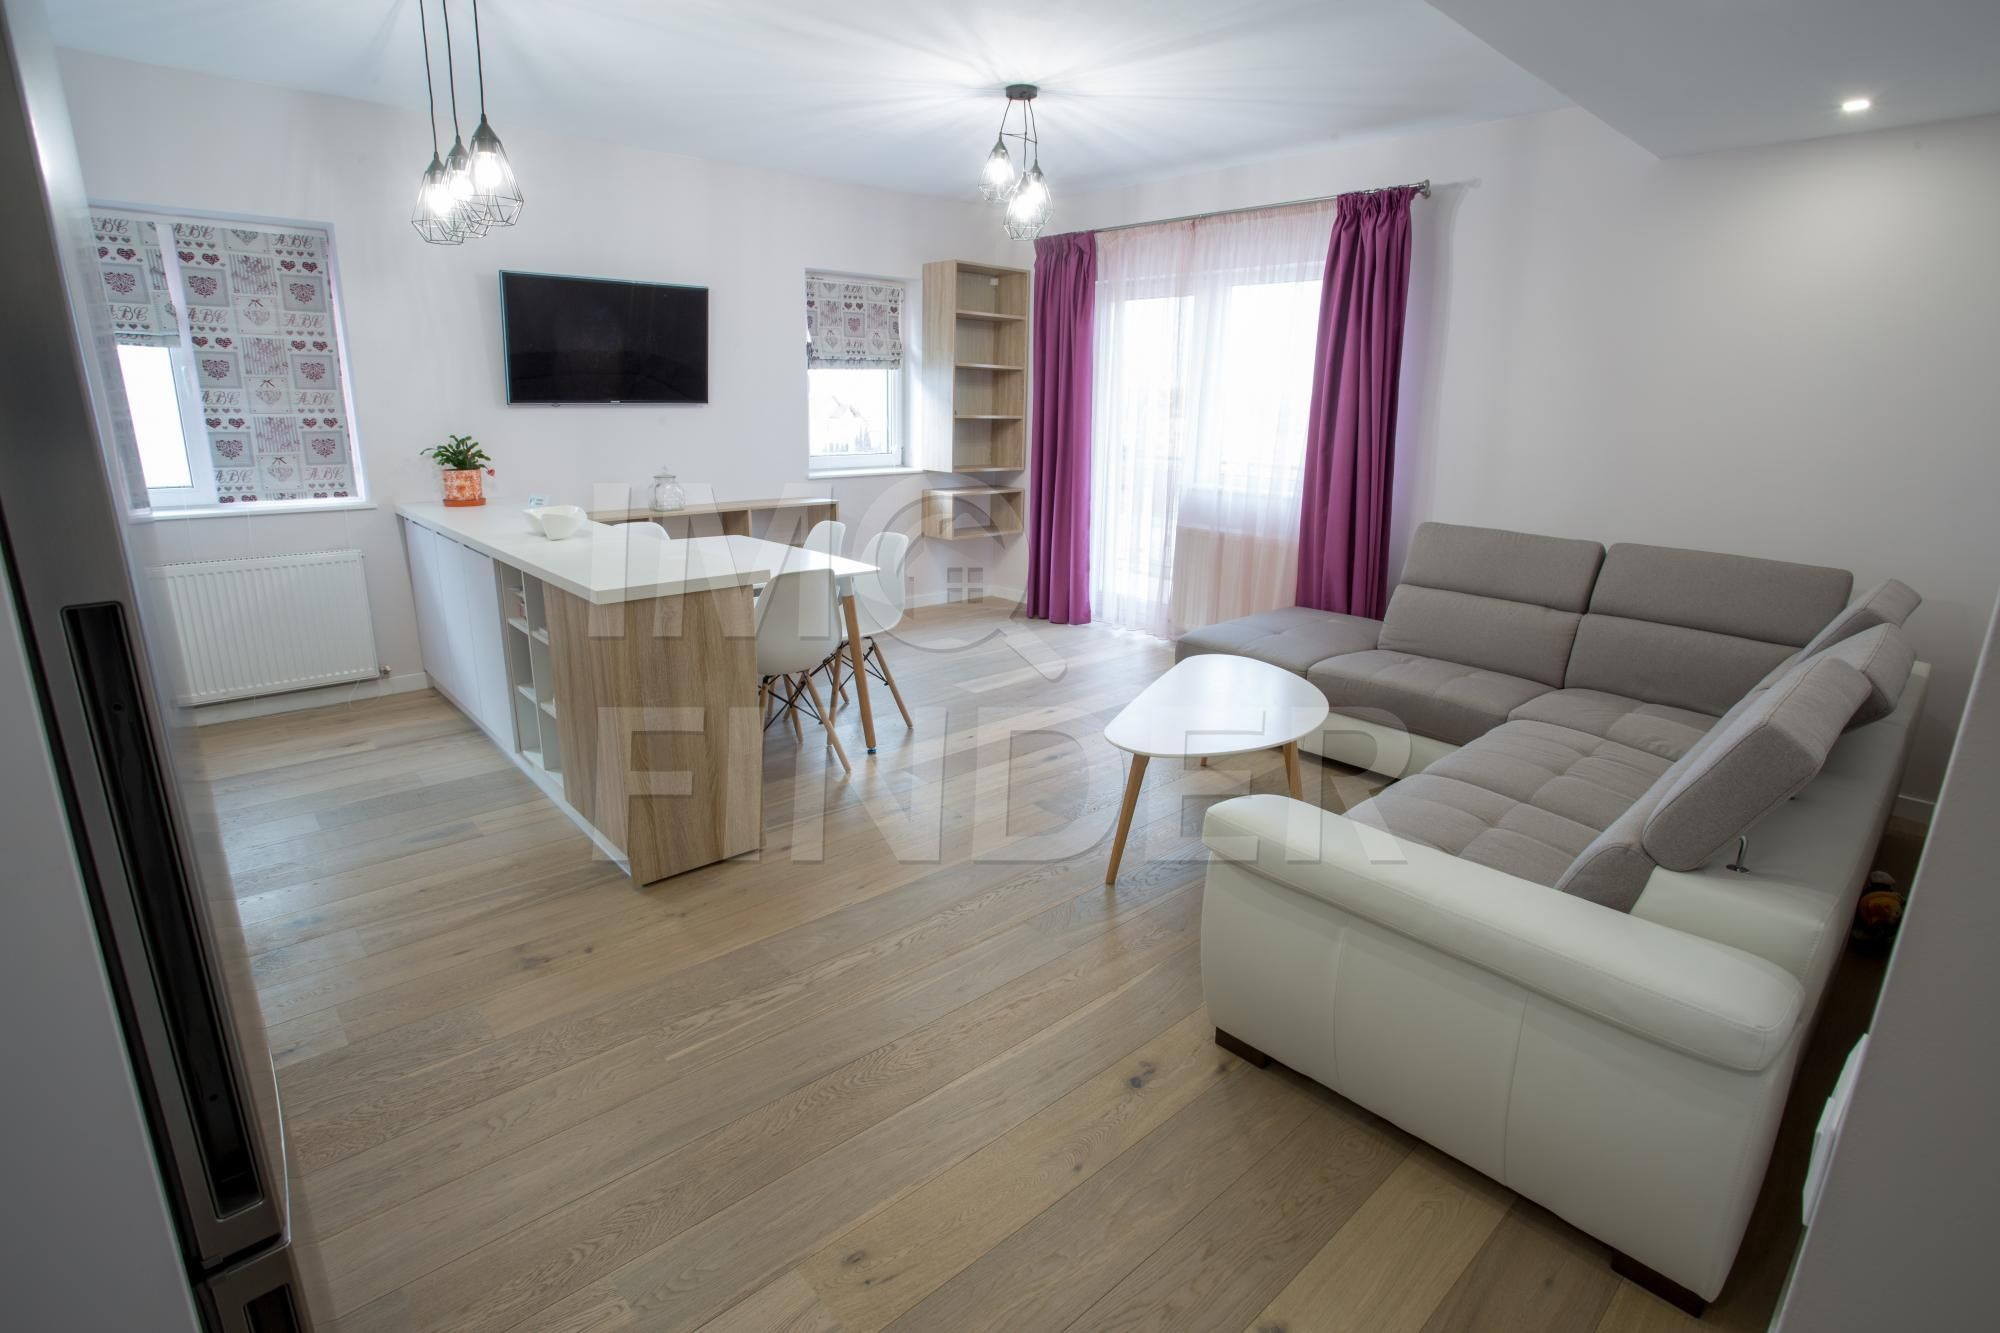 Inchiriere apartament ultrafinisat 3 camere in Europa, parcare